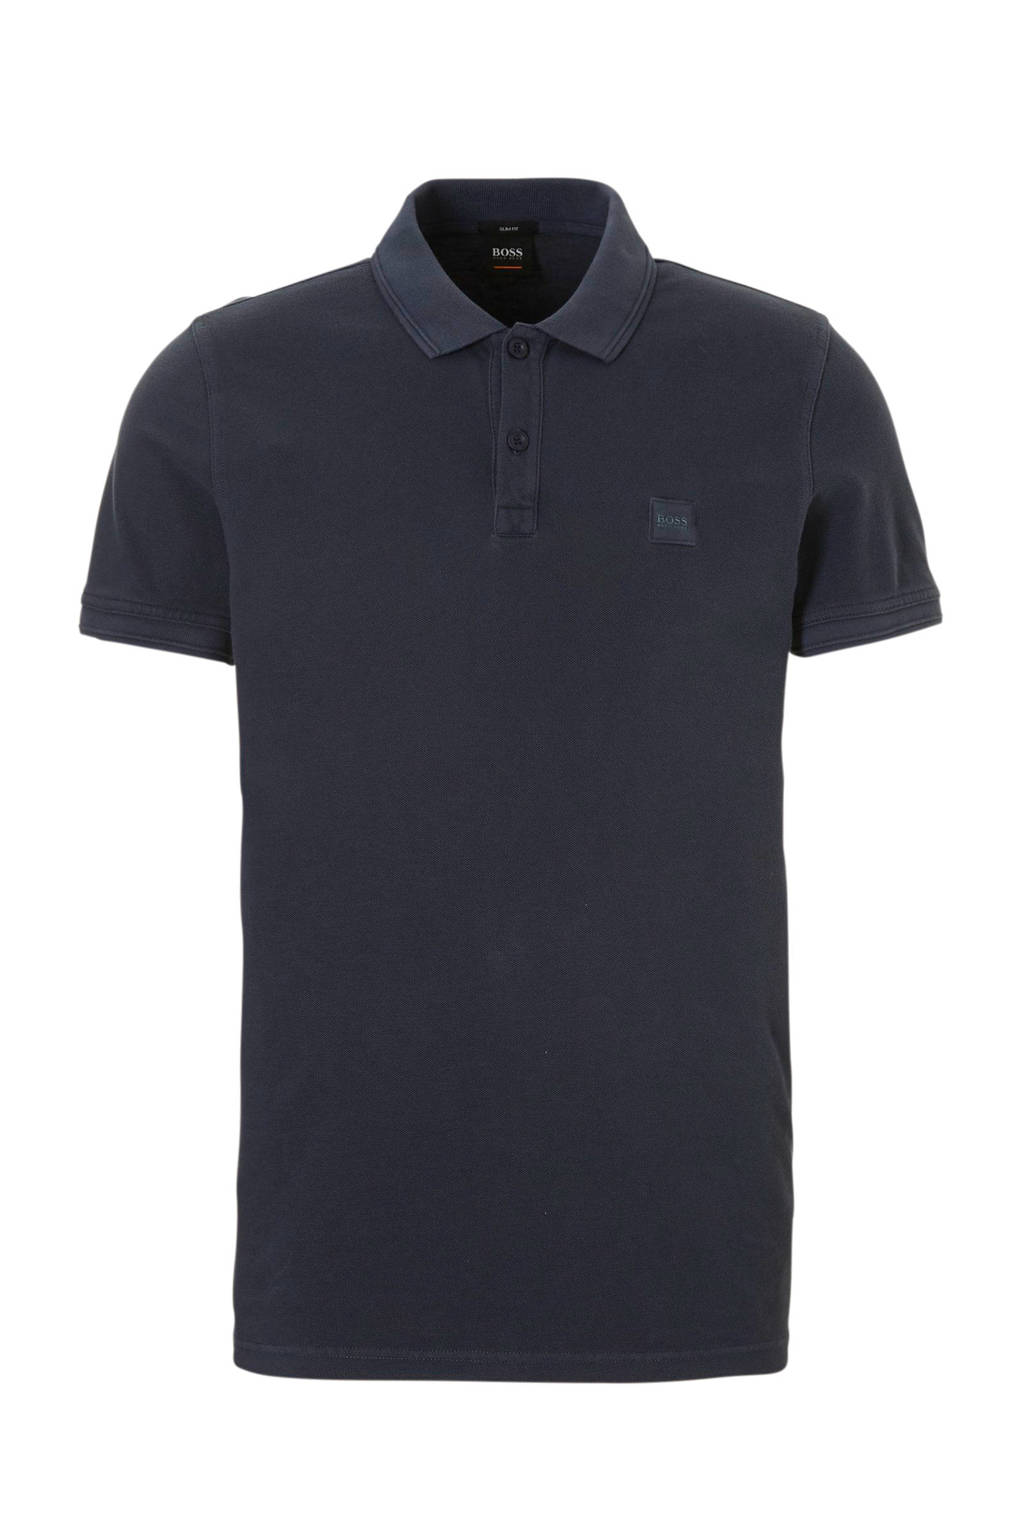 Boss Casual polo, Donkerblauw